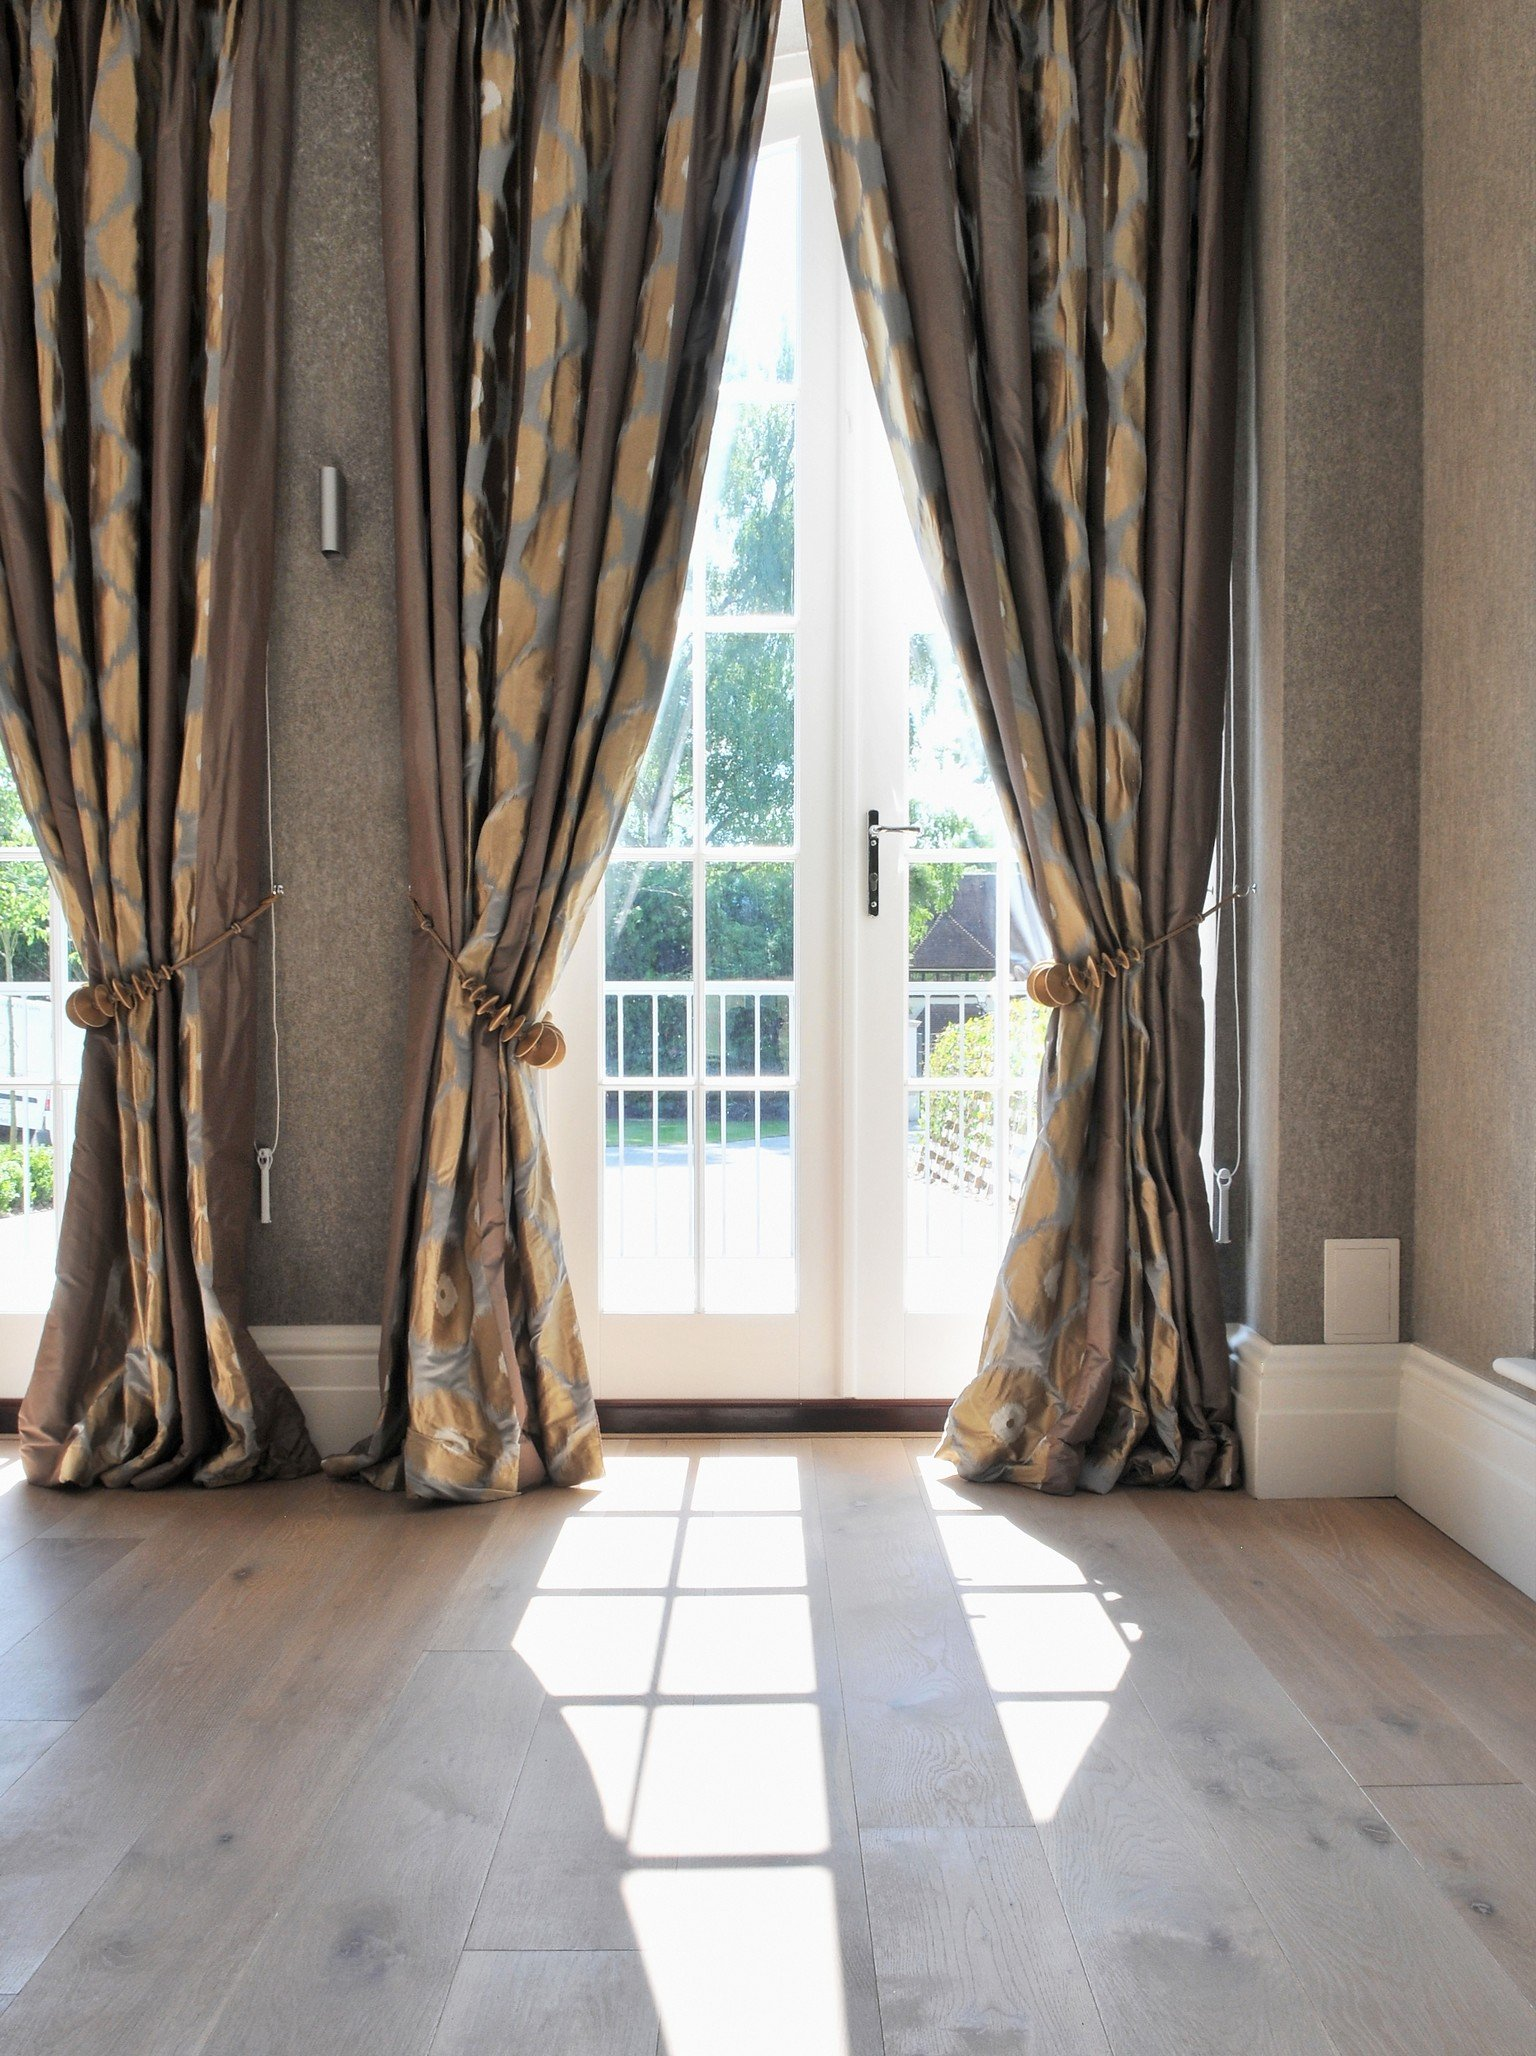 wood flooring and sash windows